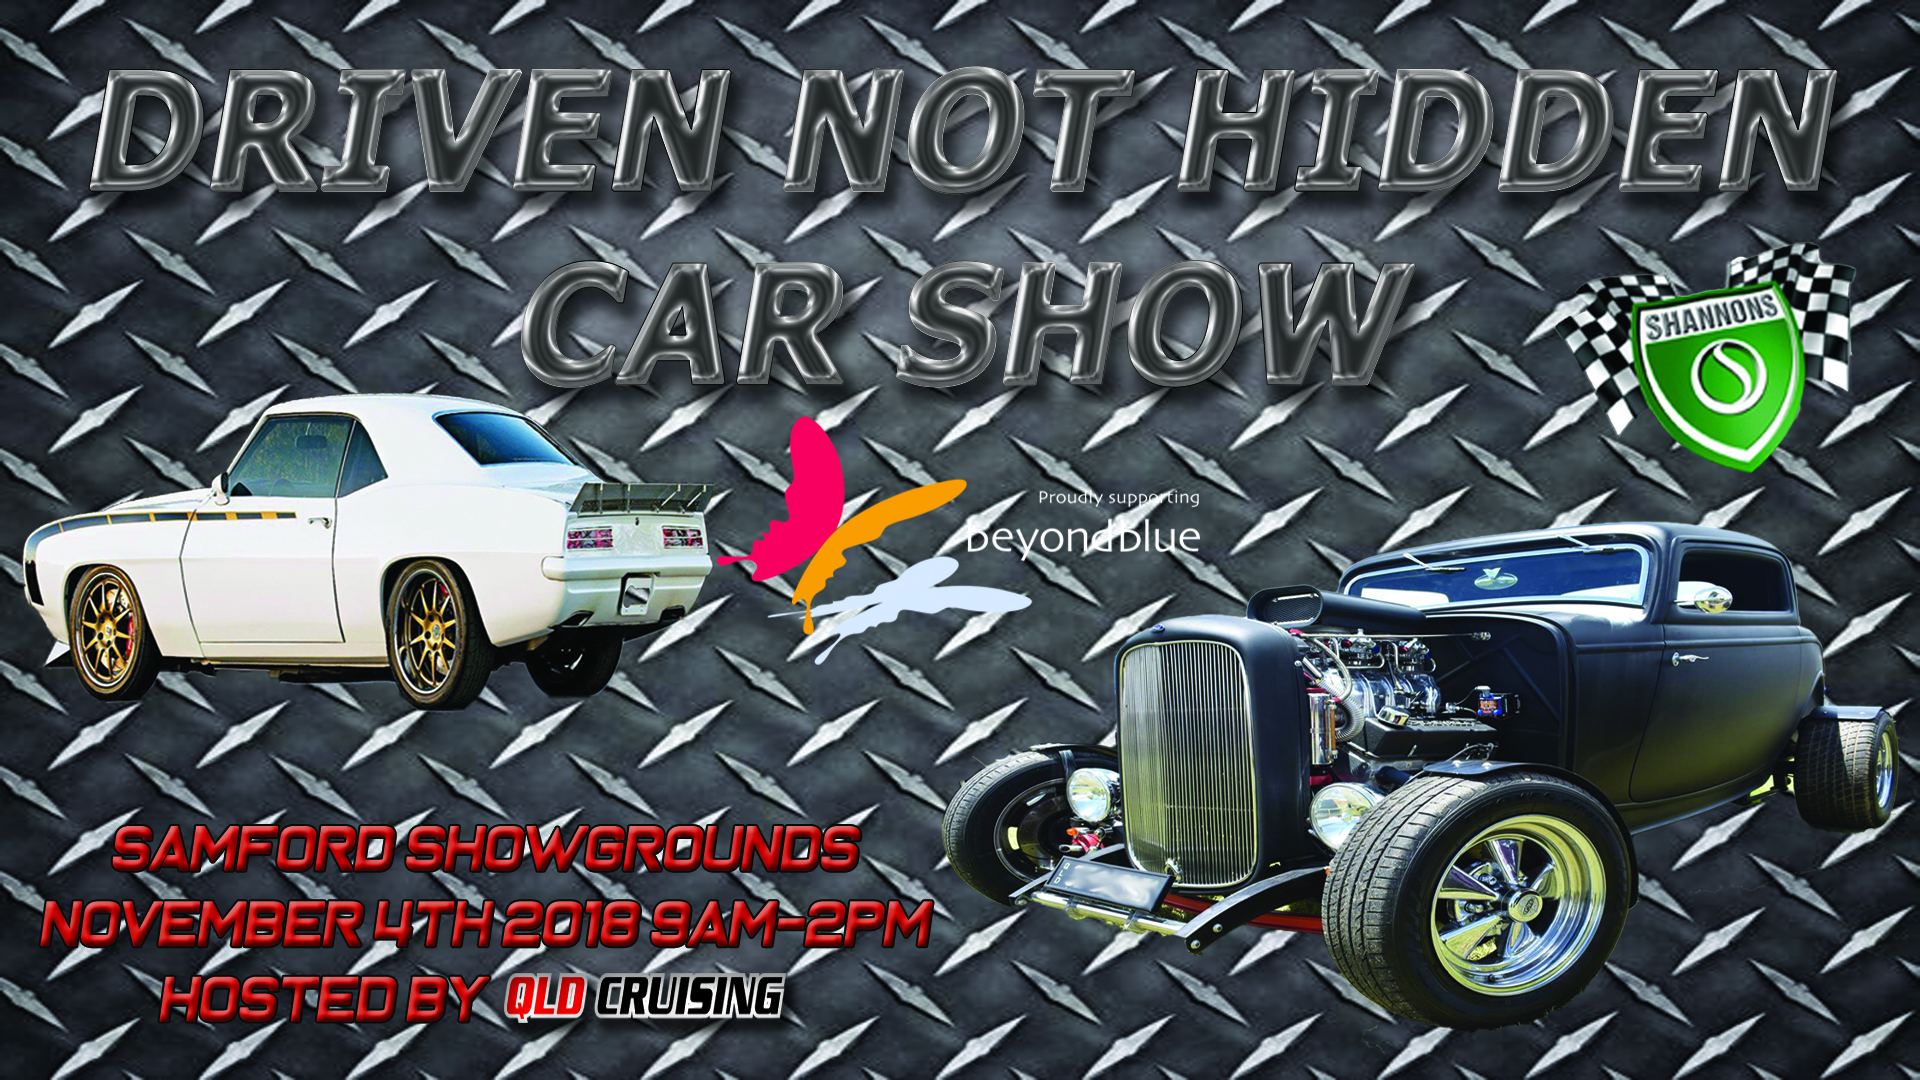 Searching Events Shannons Club - Car shows tonight